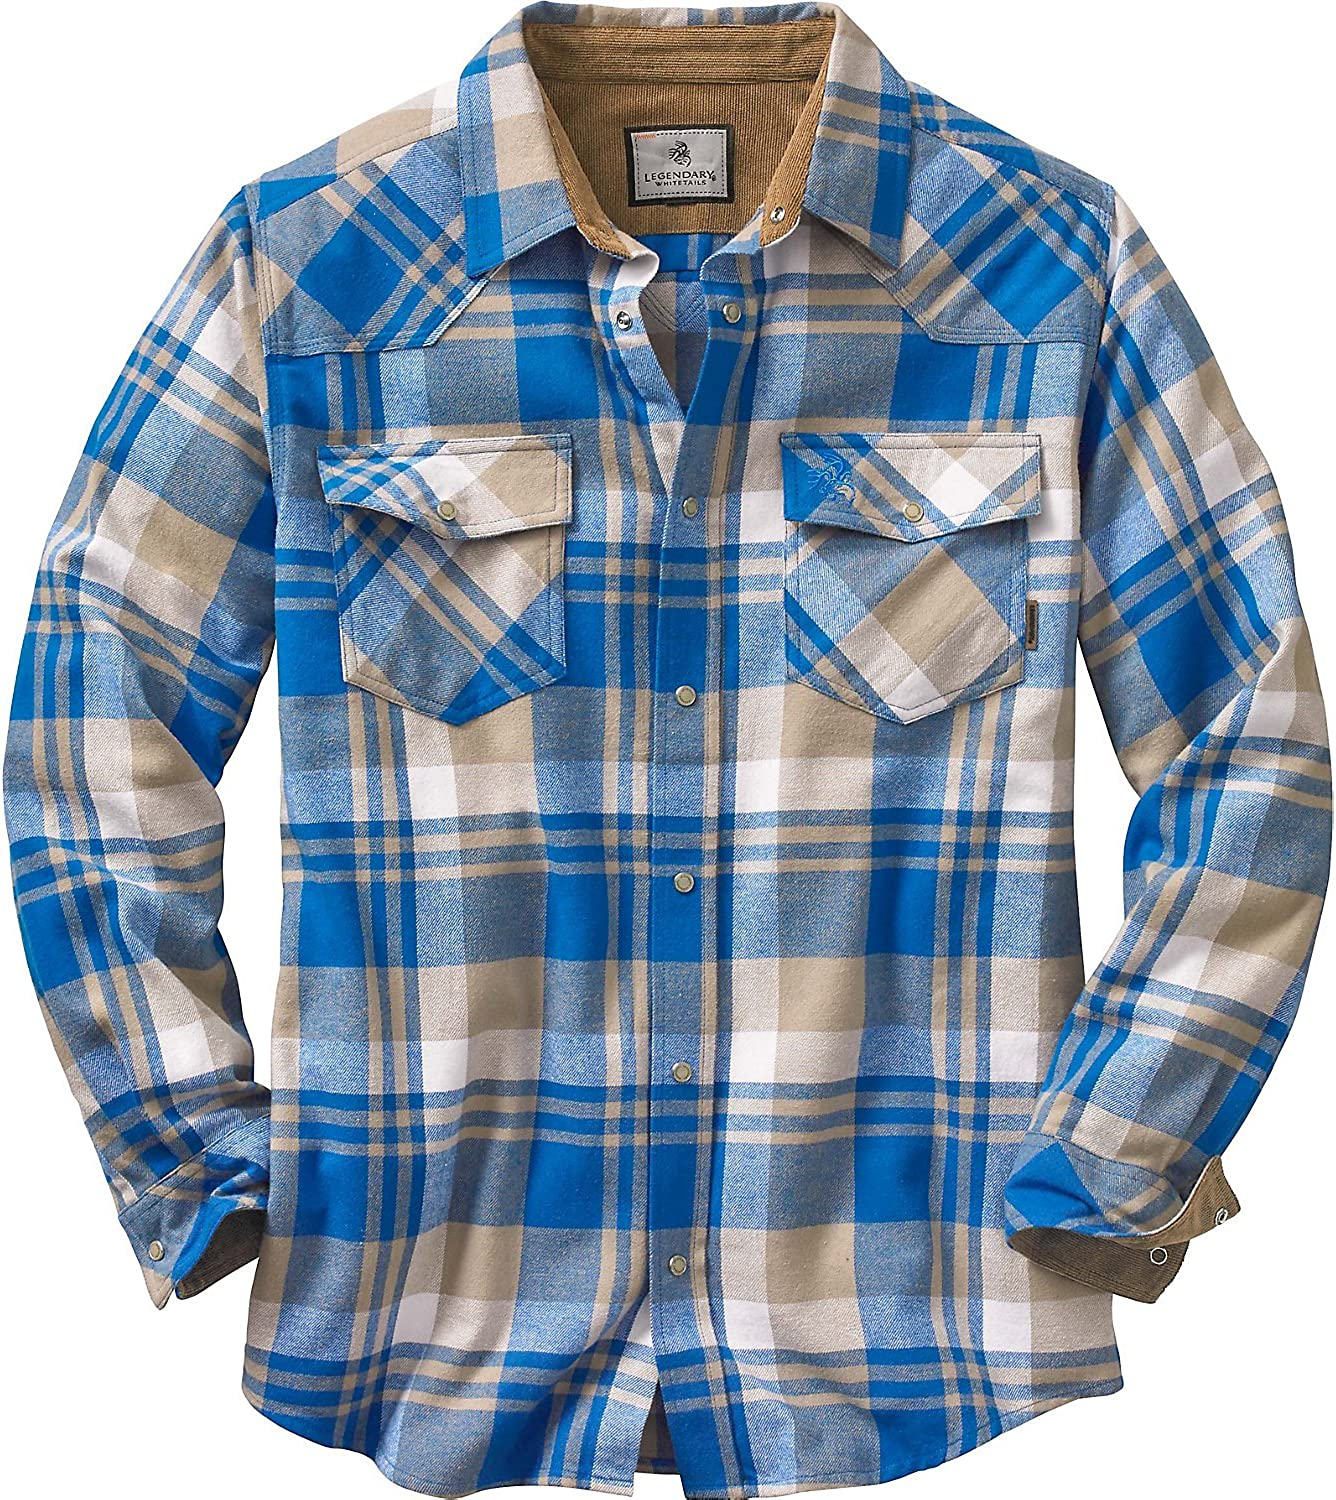 Legendary Whitetails Men's Shotgun Long Sleeve Western Flannel Shirt-Casual Snap Front Regular Fit Plaid with Corduroy Trim: Clothing